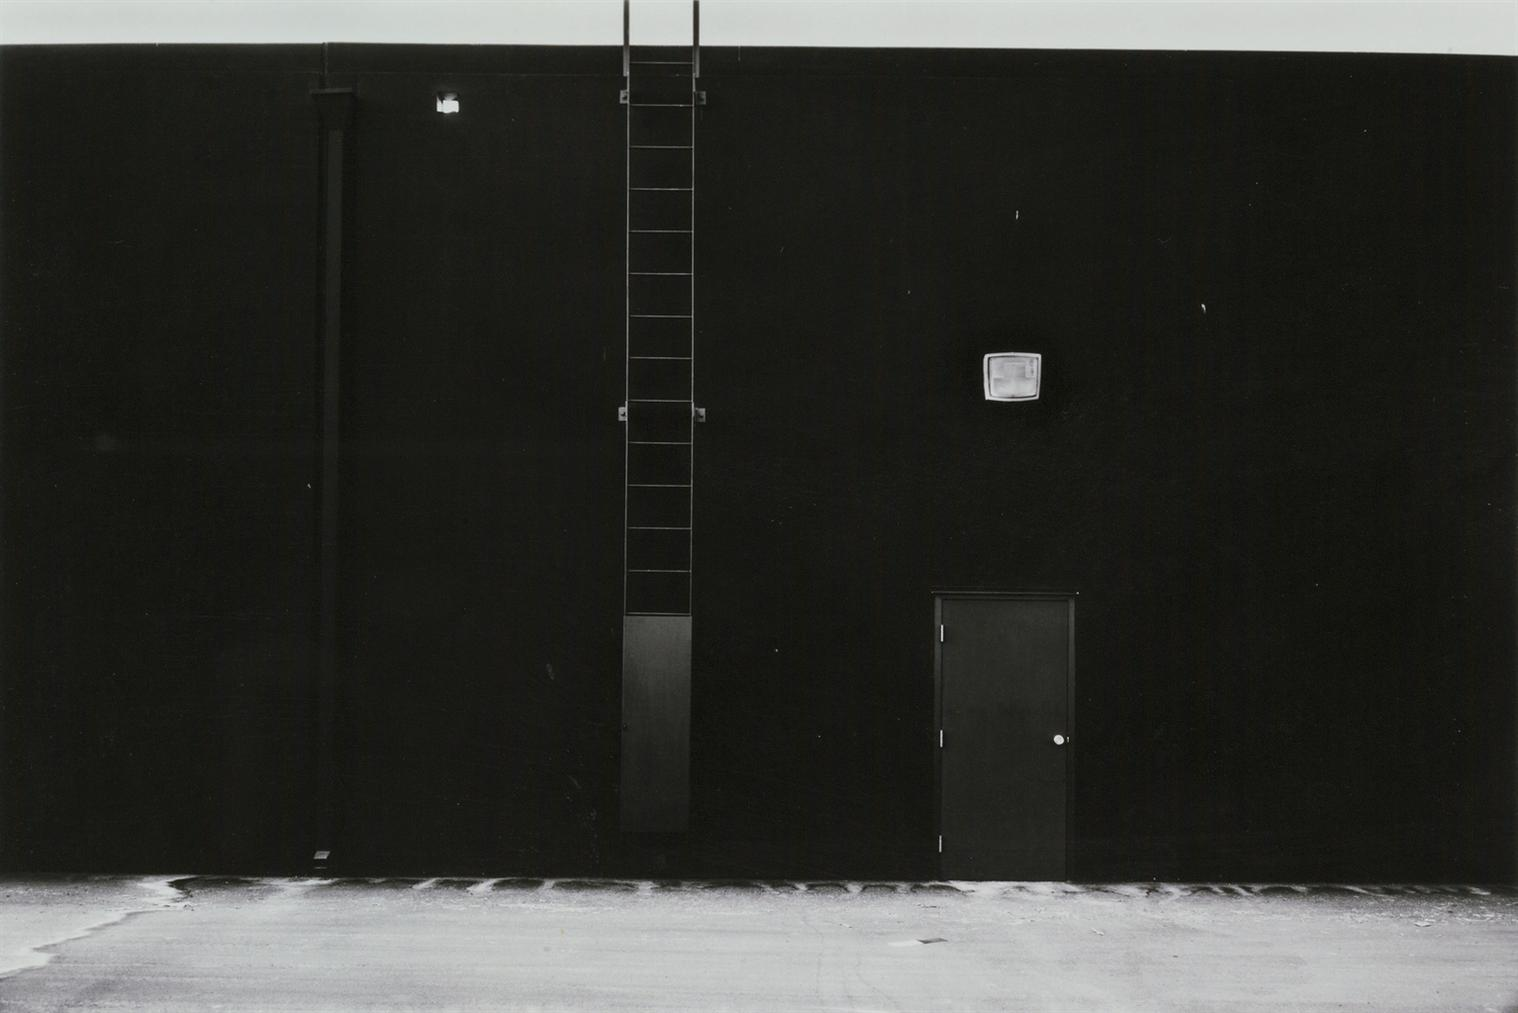 Lewis Baltz-East Wall, Mcgaw Laboratories, 1821 Langley, Costa Mesa #24 From The New Industrial Parks Near Irvine, California-1974